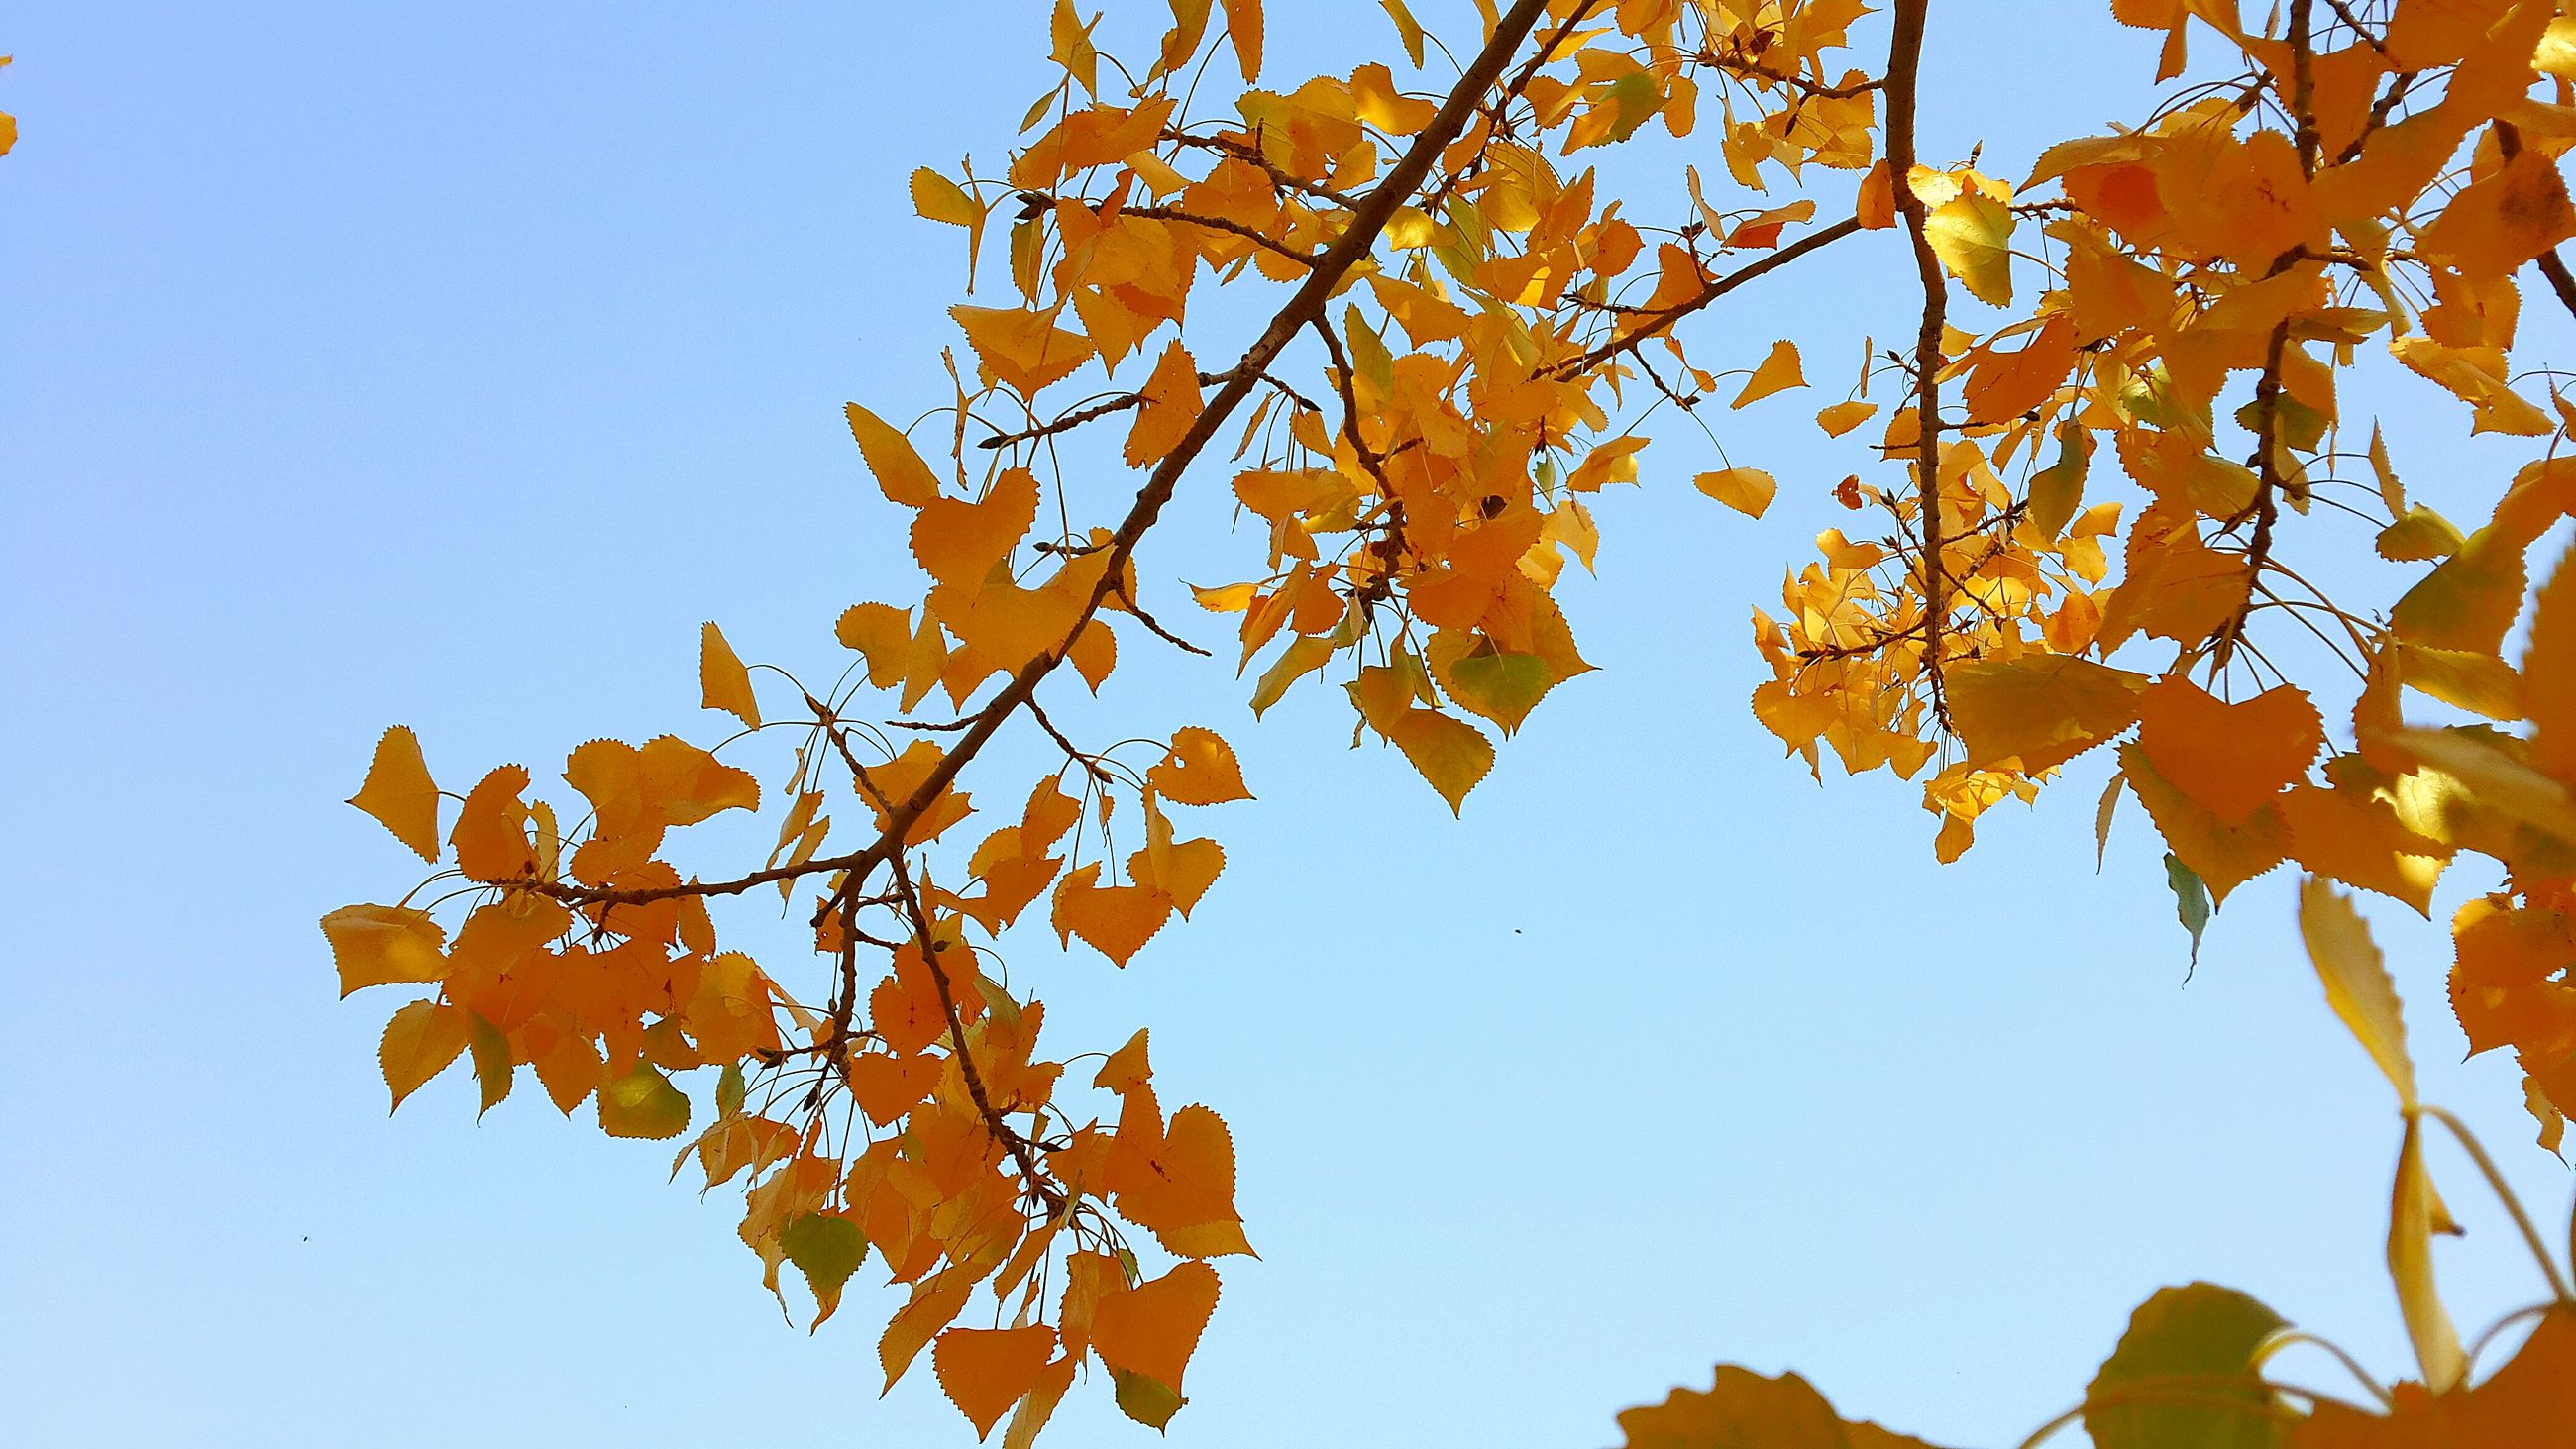 clear sky, autumn, low angle view, leaf, branch, tree, growth, change, season, nature, blue, orange color, beauty in nature, sunlight, day, yellow, close-up, tranquility, outdoors, no people